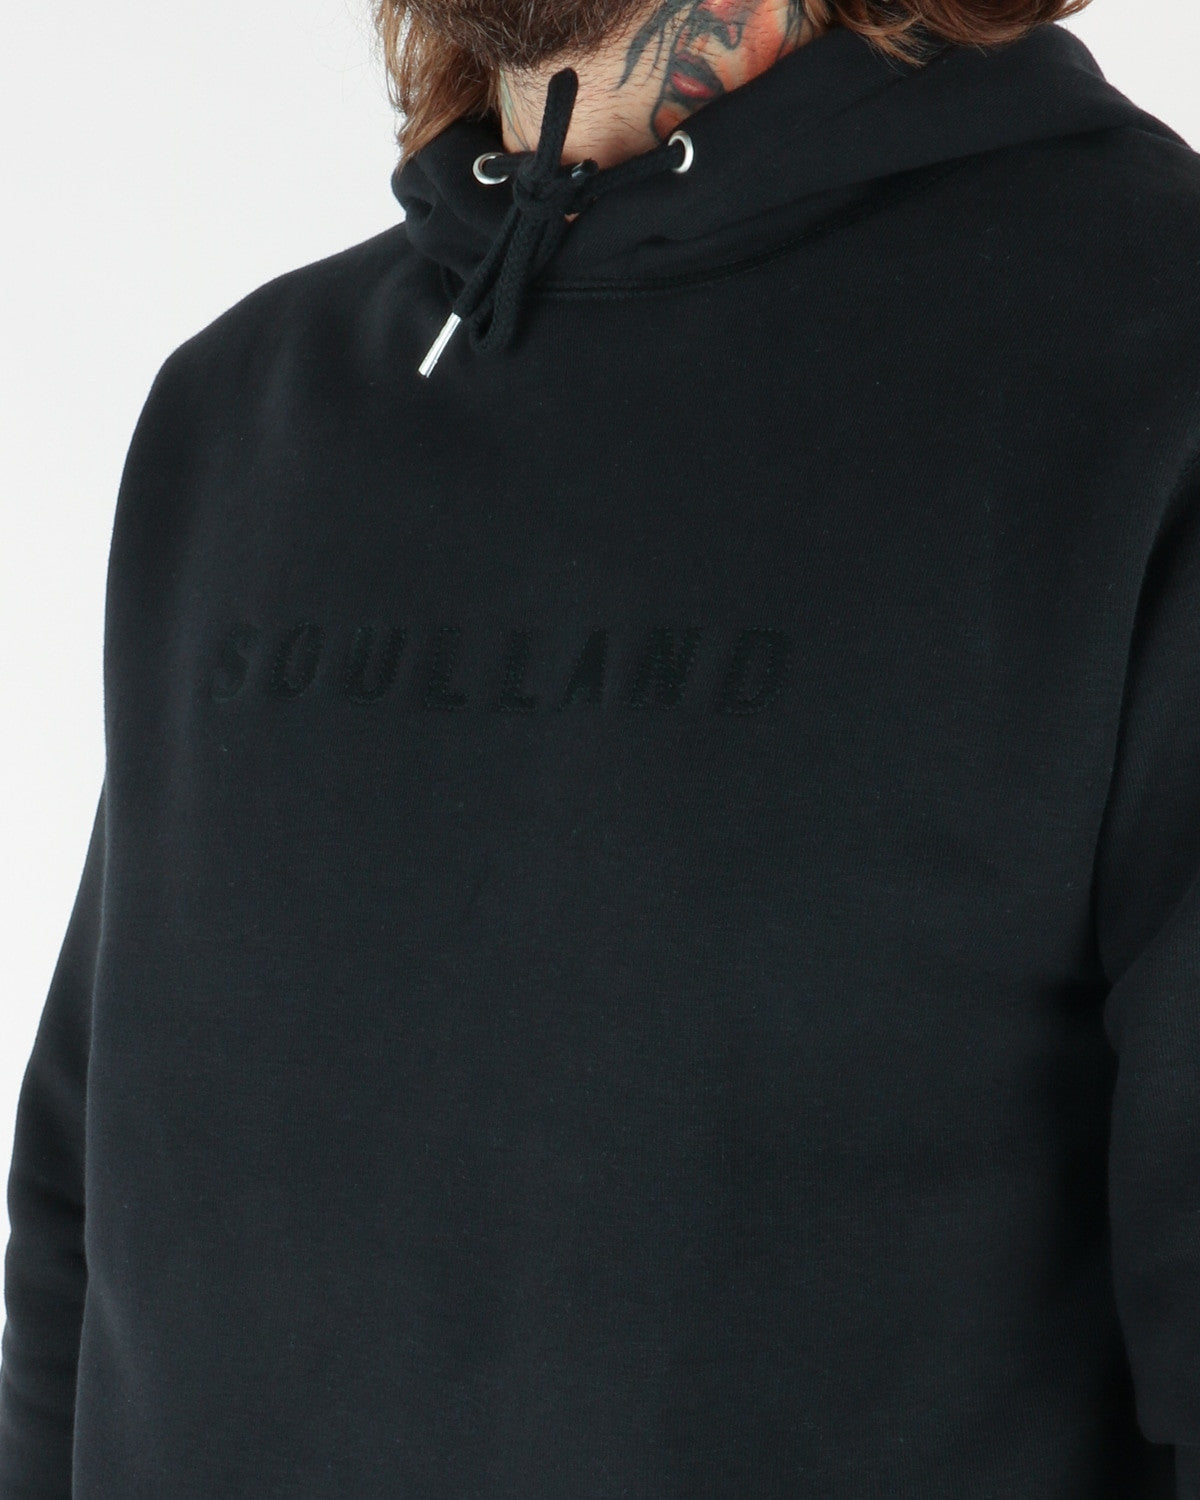 soulland_guy_hooded sweat_black_view_3_3